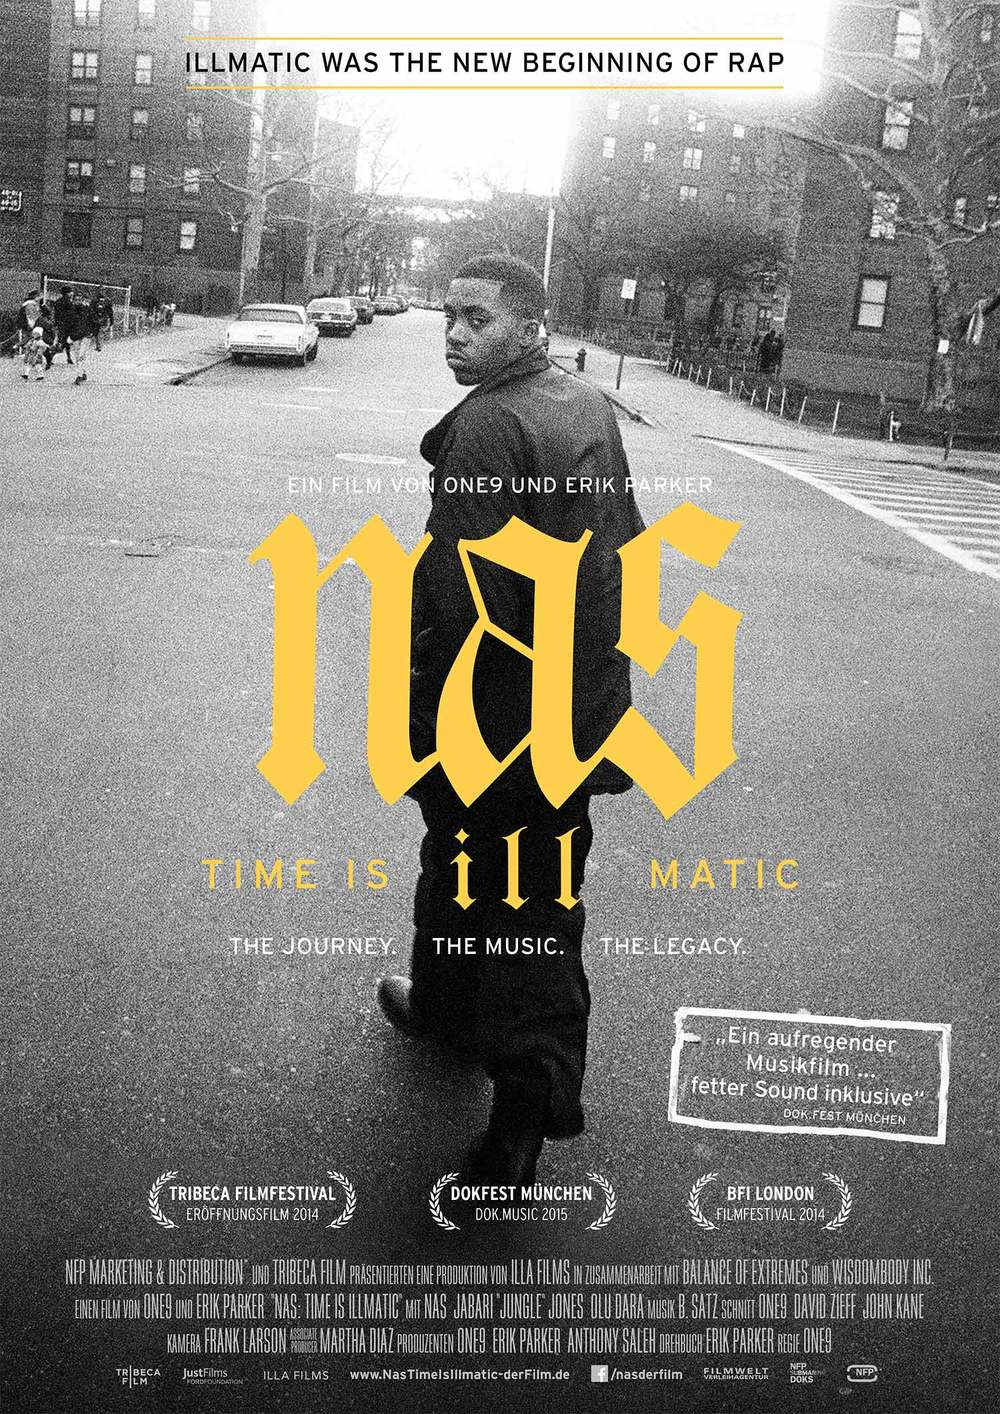 "NFP*<a href=""/nas-time-is-illmatic"">→</a><strong>Adaption</strong>"